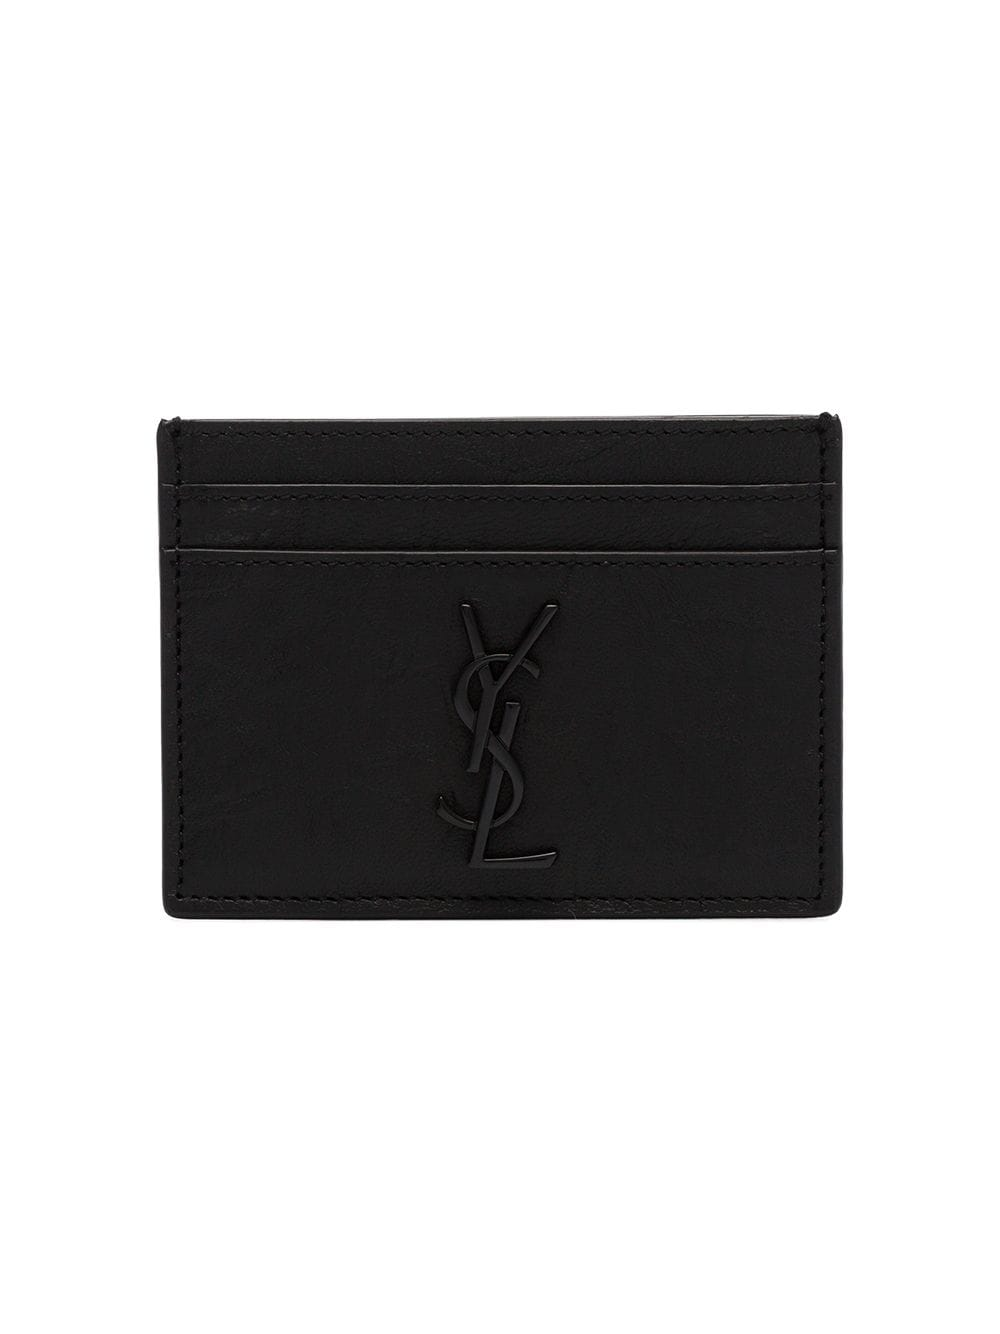 Saint Laurent Wallets